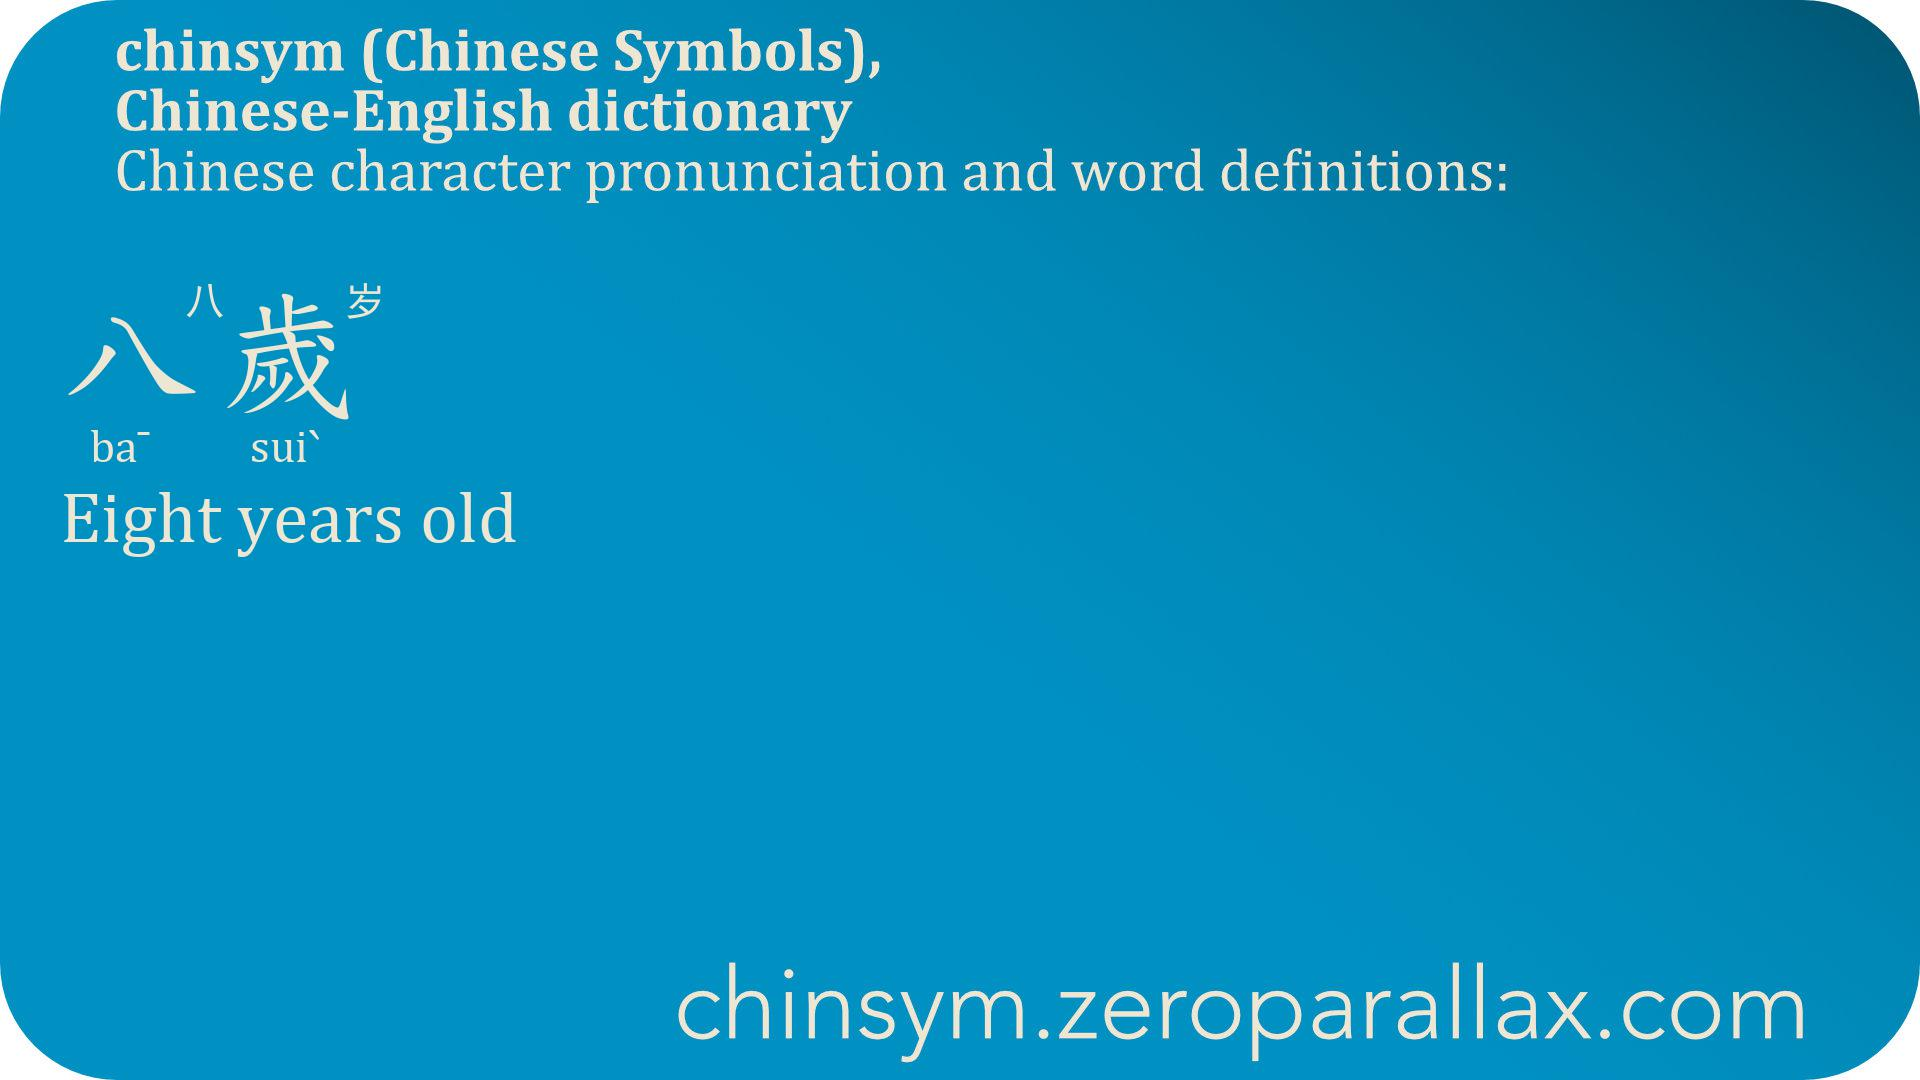 八歲  (ba¯ suiˋ) 八岁 : Eight years old. chinsym.zeroparallax.com